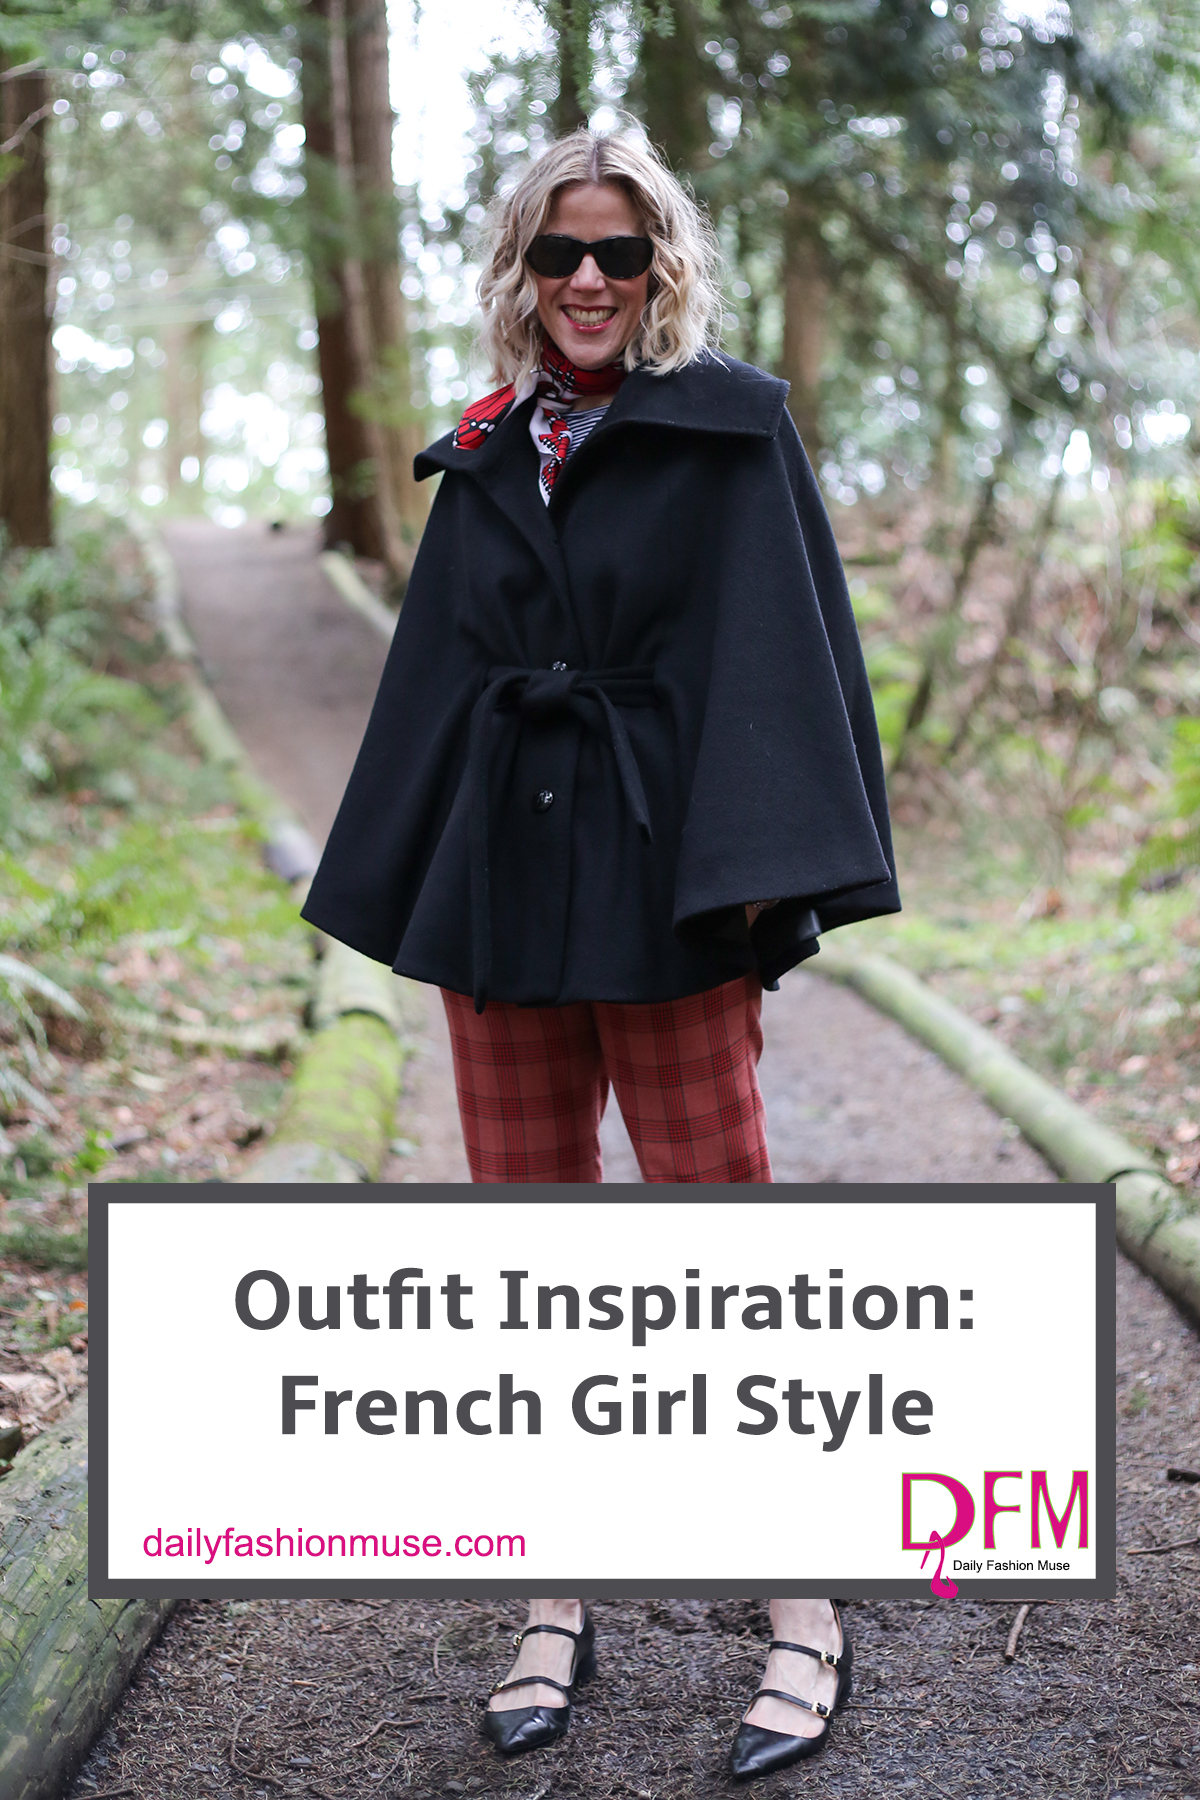 Ooh La La French Girl Style Daily Fashion Muse